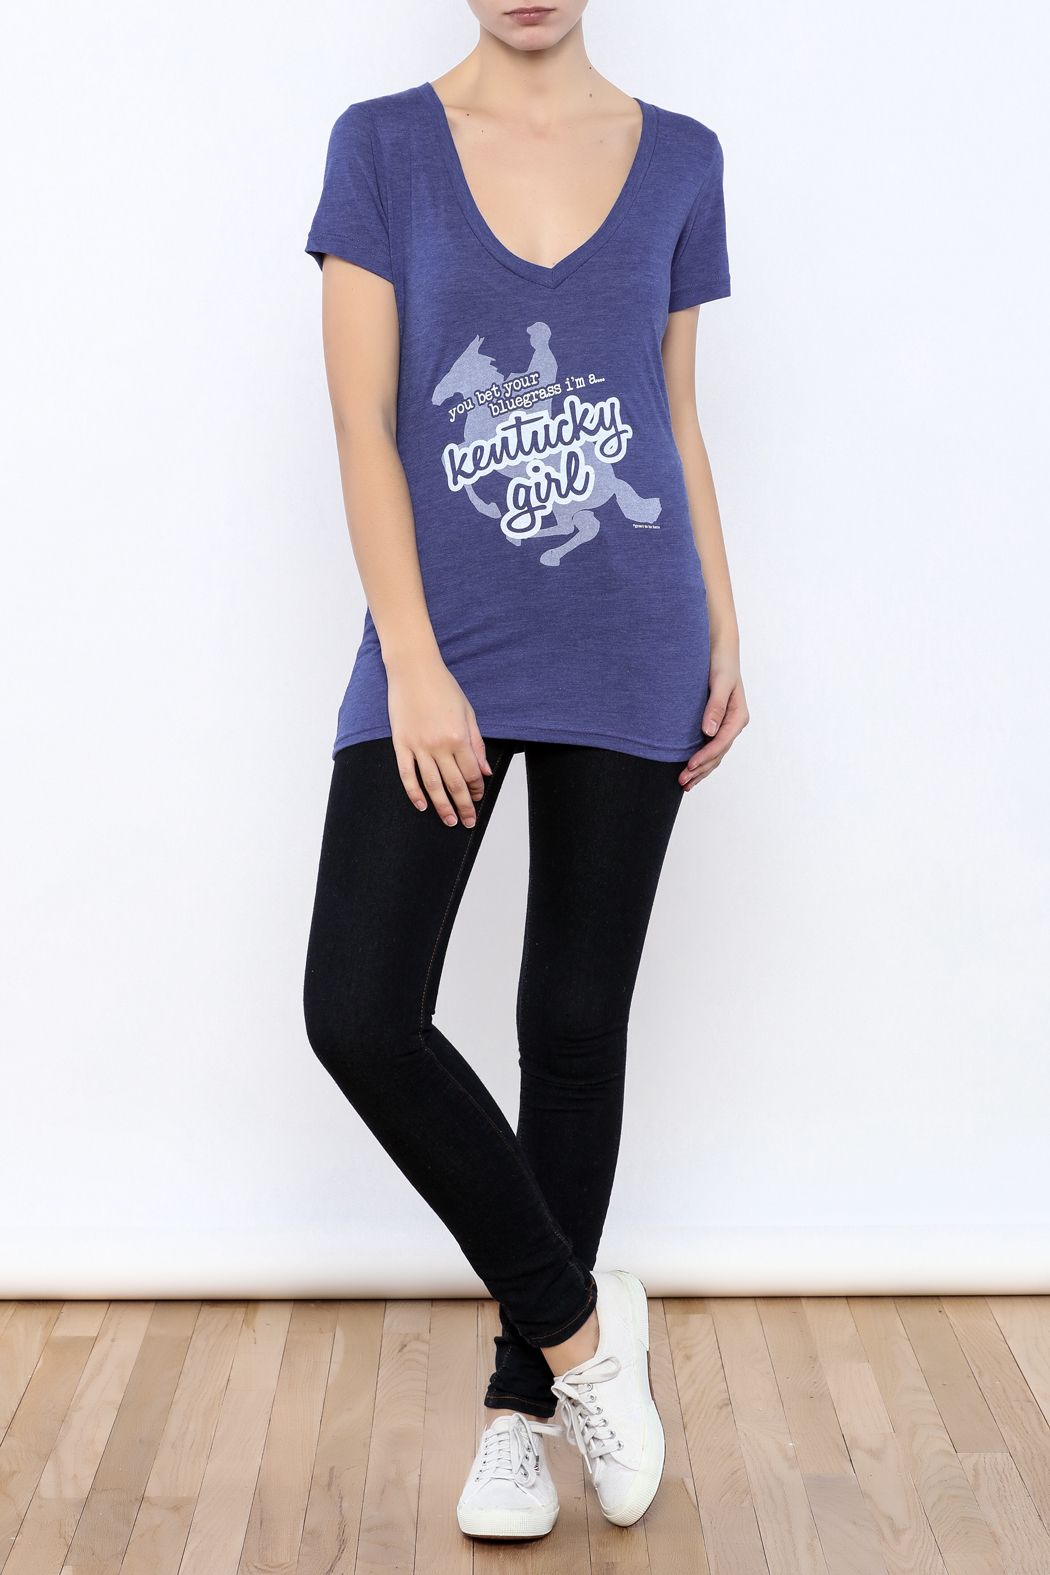 Great to Be Here Tees Kentucky Girl v-neck - Front Full Image